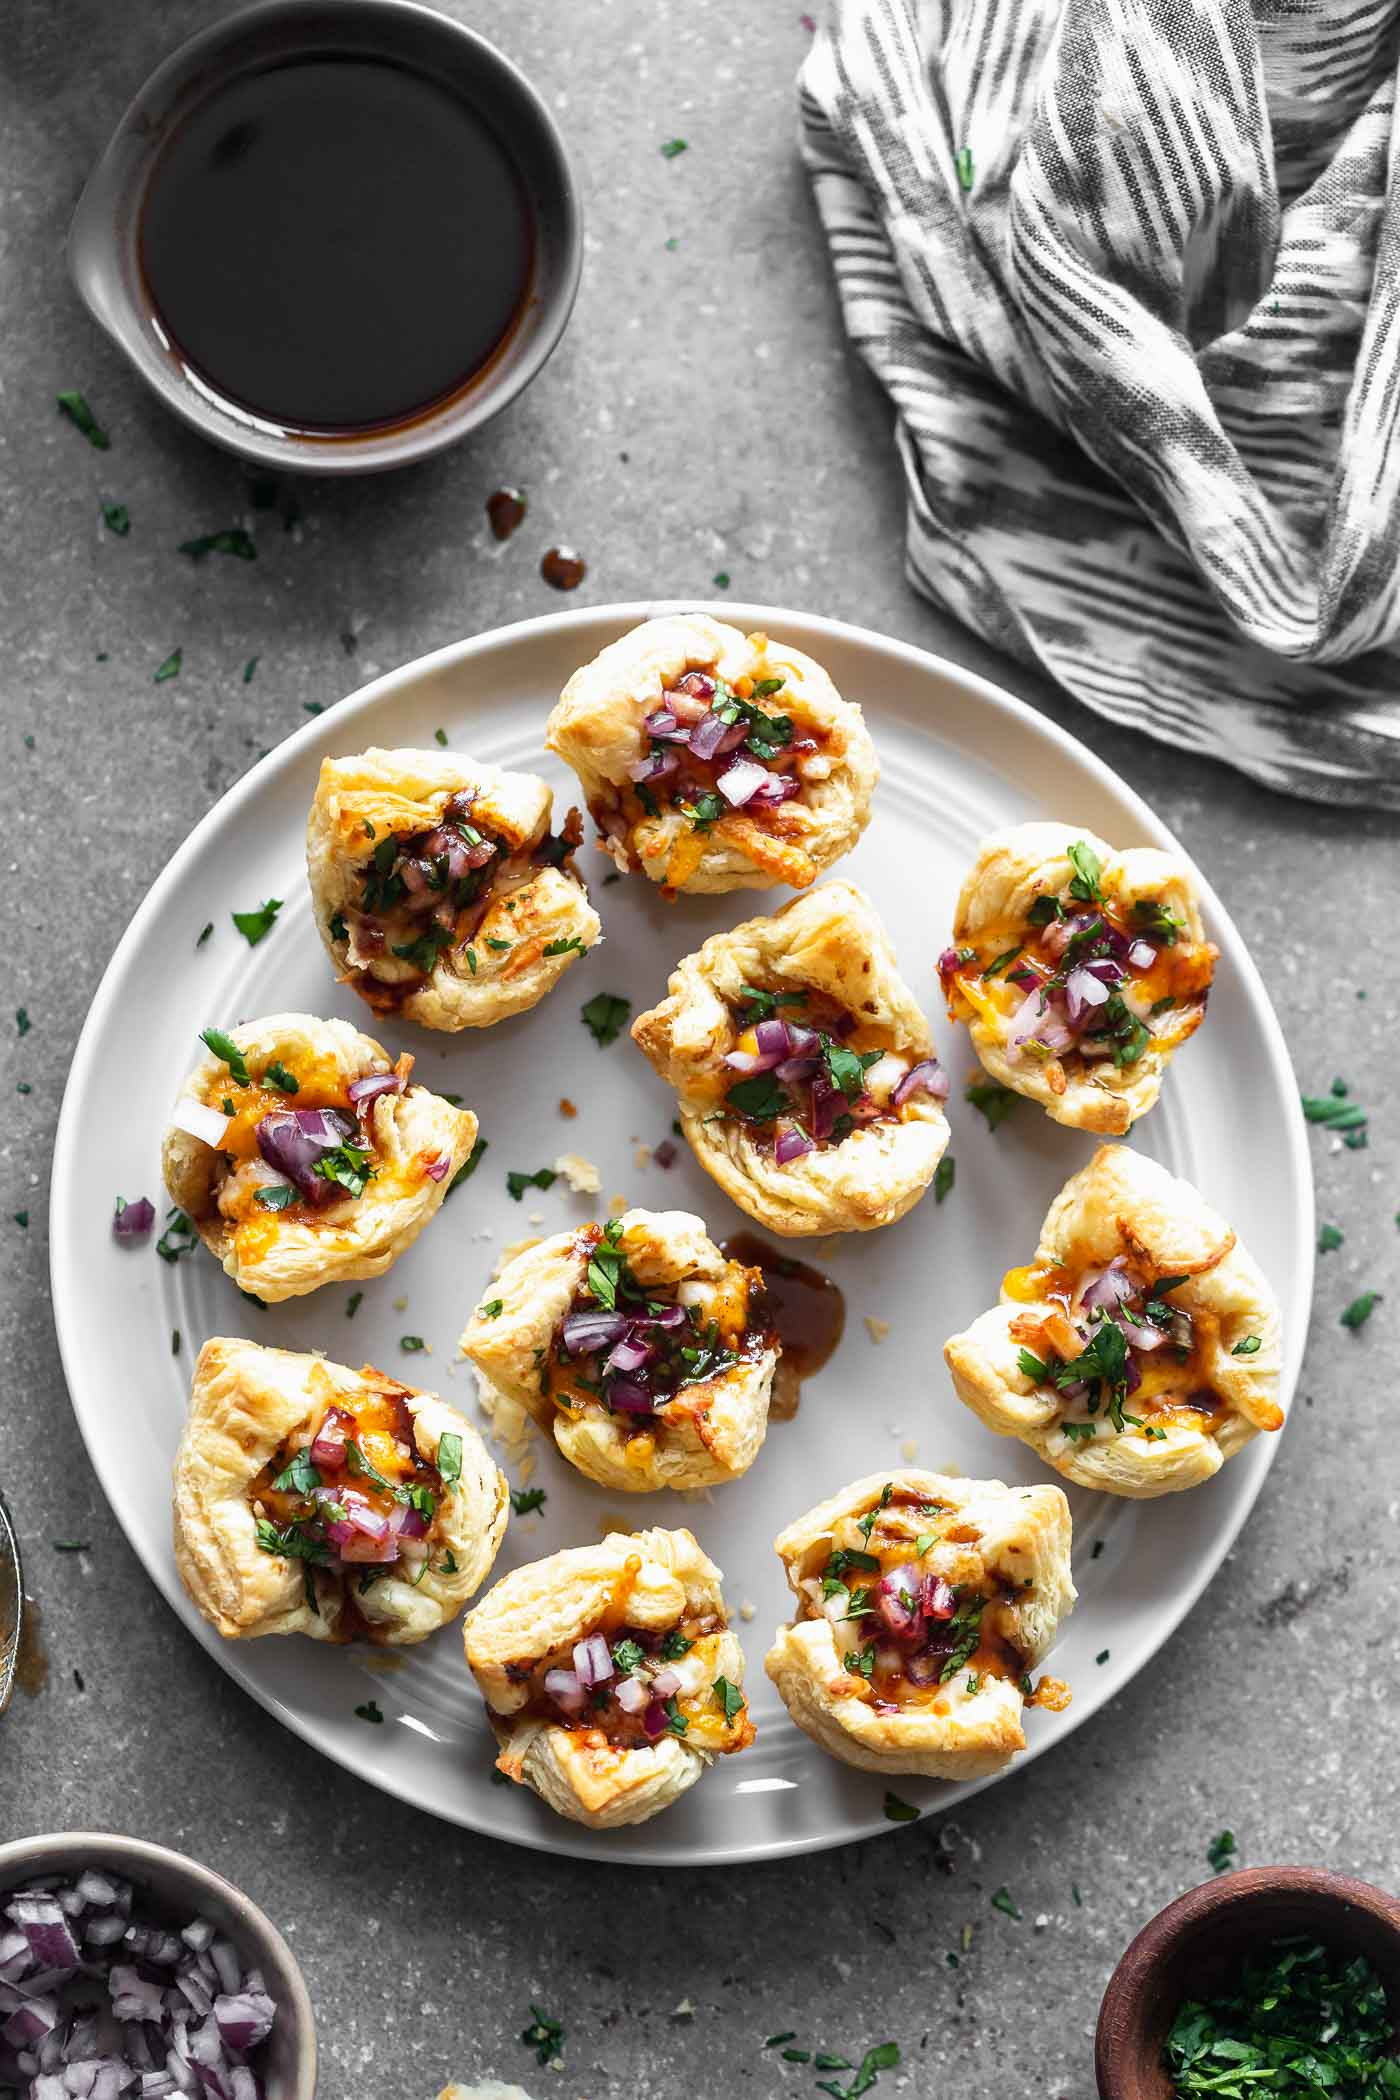 Cheesy Barbecue Chicken Bites: Chopped chicken tossed in your favorite barbecue sauce, covered in cheese and served with chopped red onion and cilantro. The perfect bite-sized appetizer for a crowd!